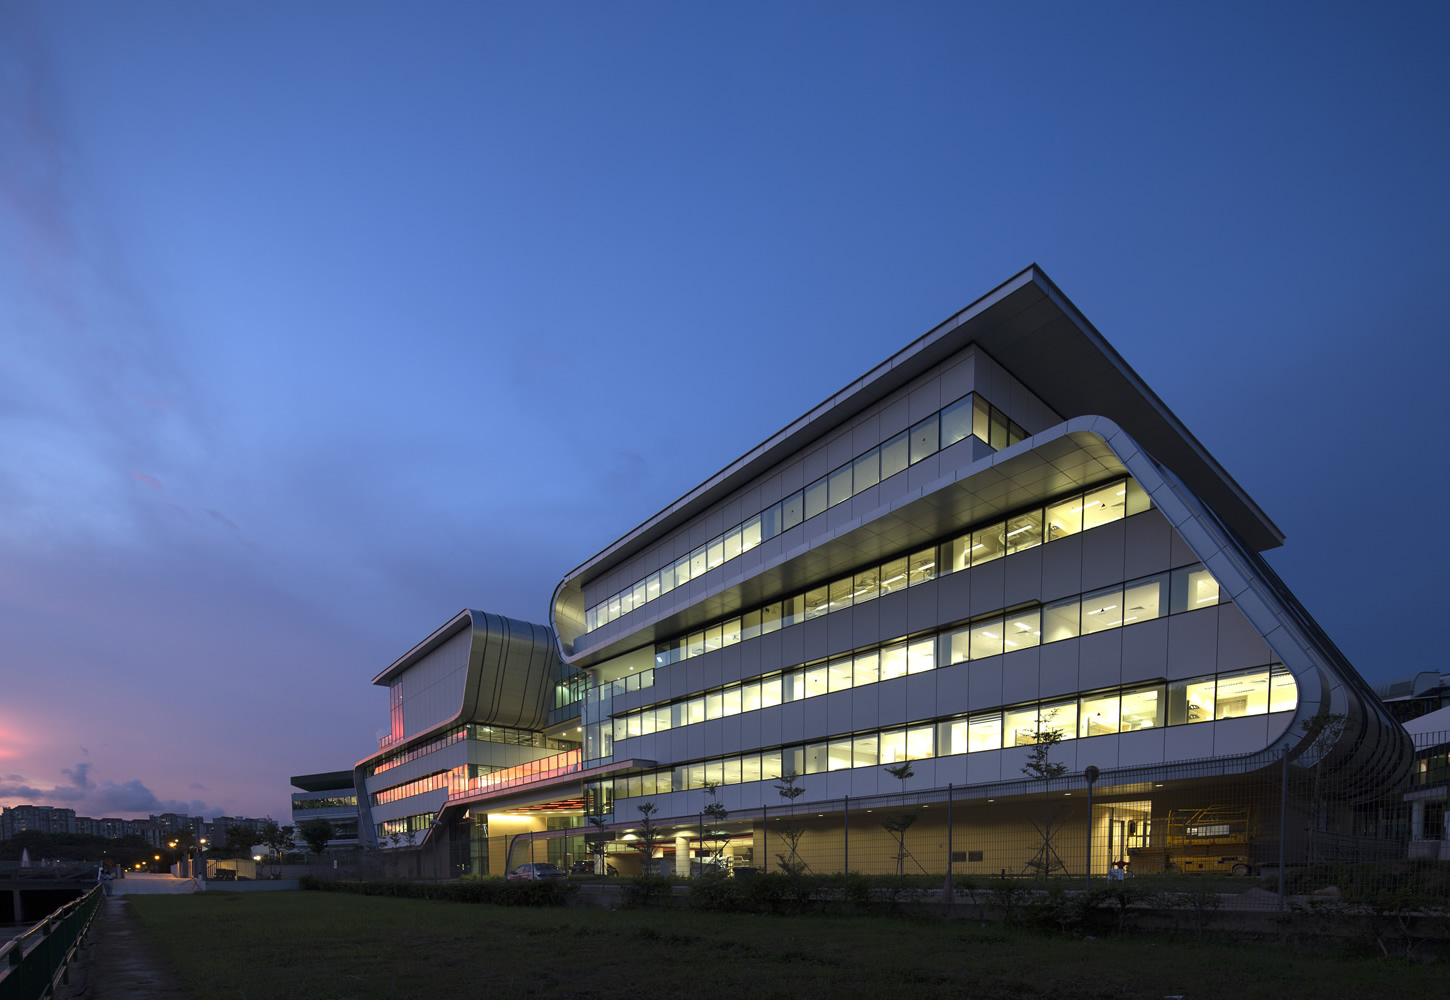 Singapore Institute of Technology at Temasek Polytechnic, S'pore